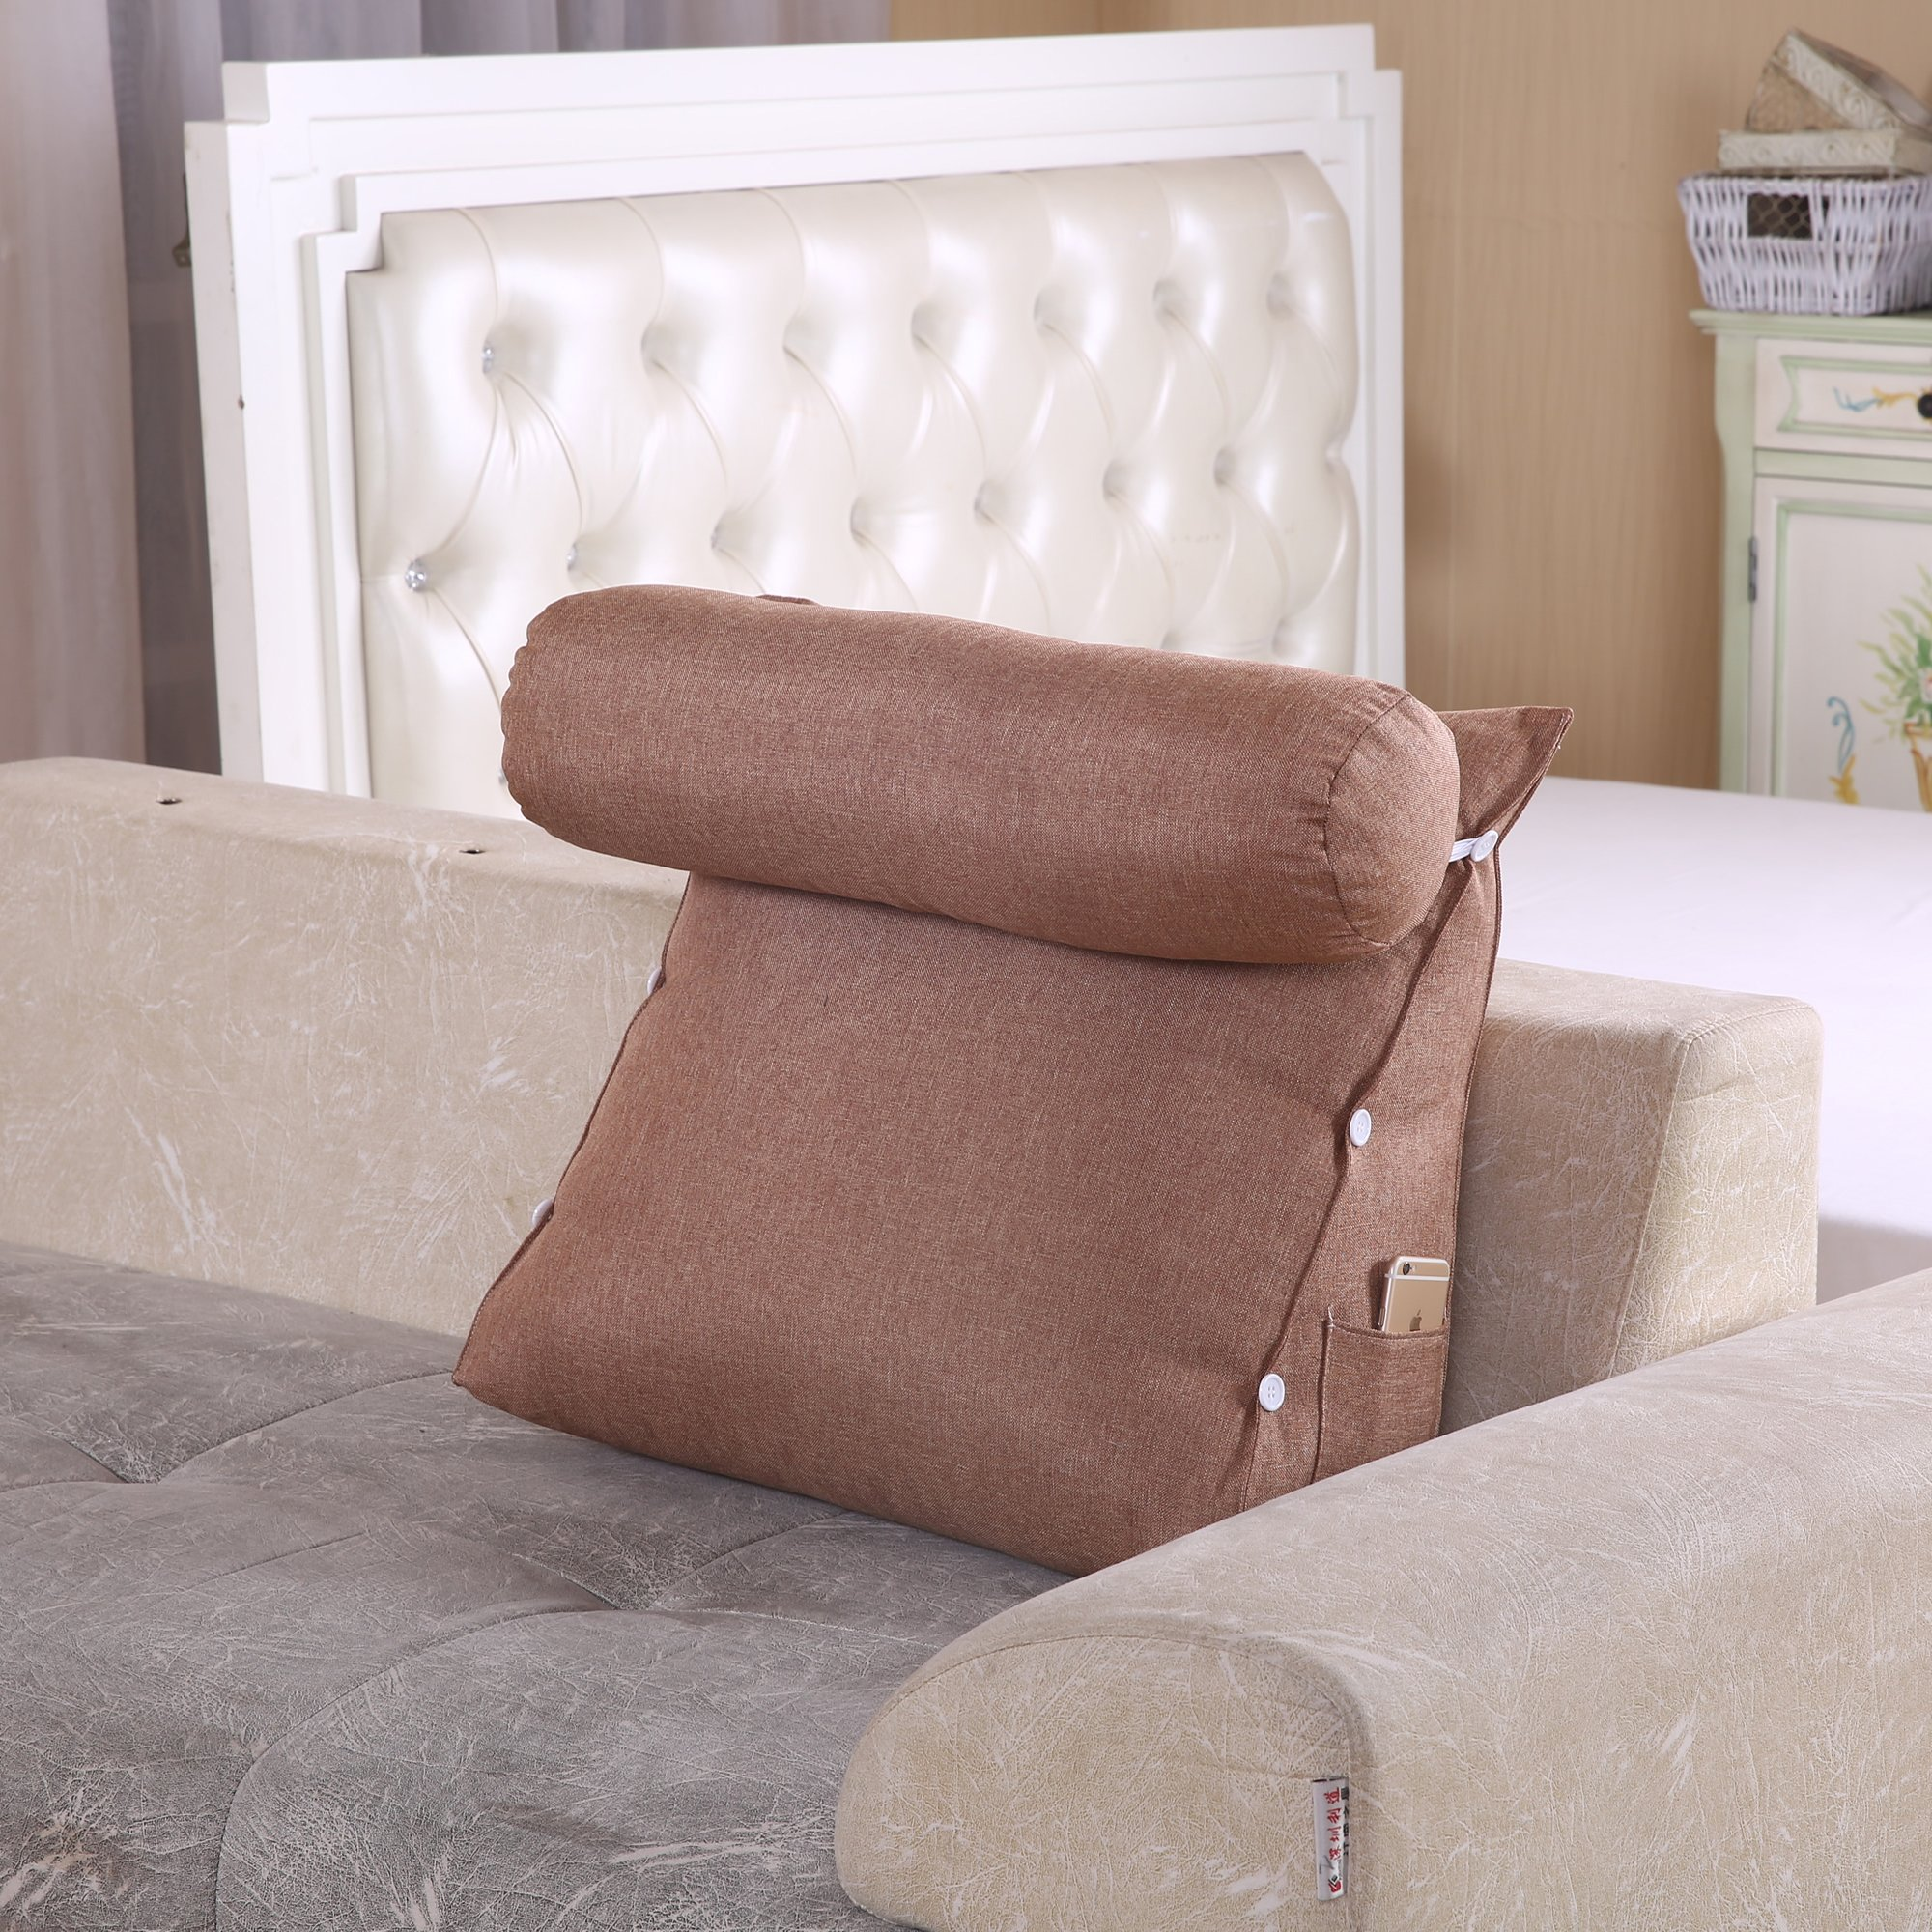 Reading Pillow Bed Cheap Reading Pillow Light Find Reading Pillow Light Deals On